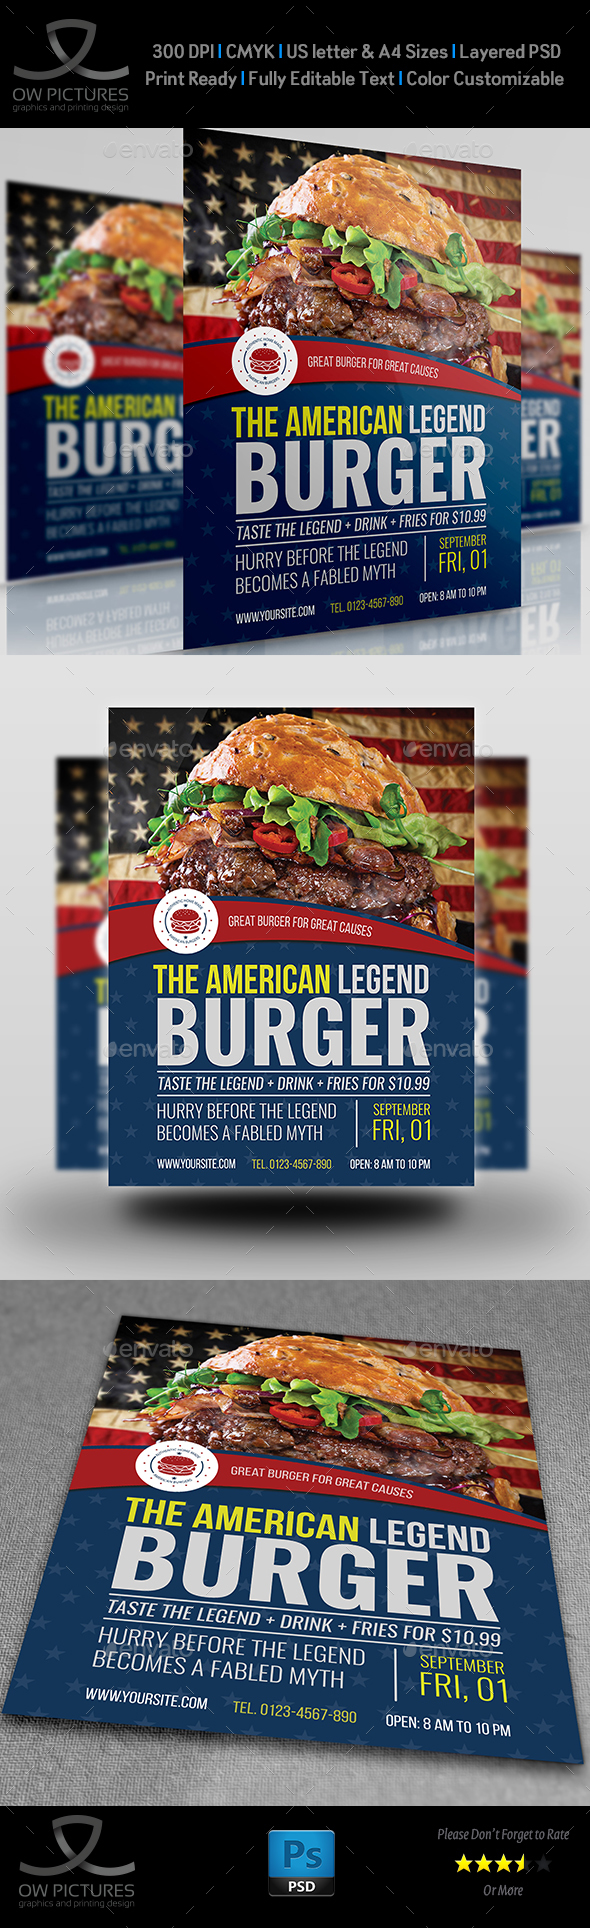 Burger Restaurant Flyer Template Vol.7 - Restaurant Flyers